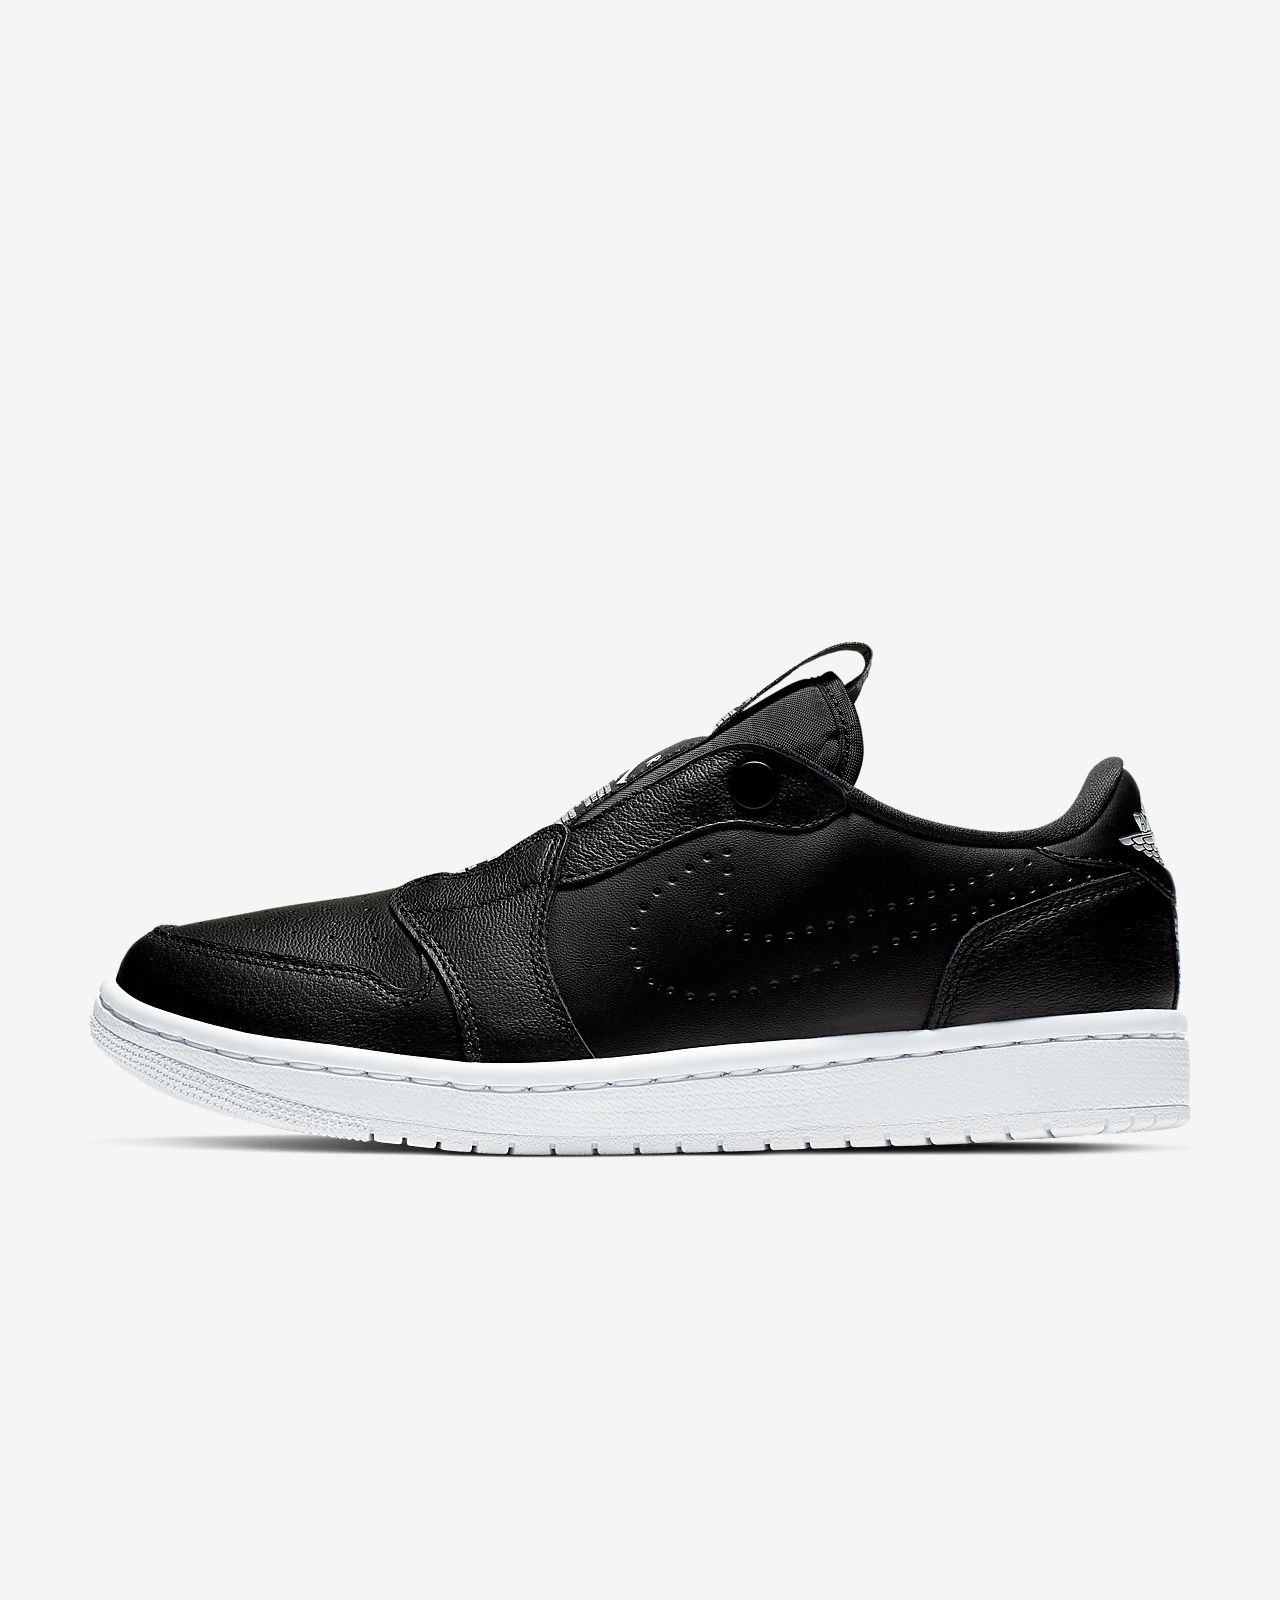 Air Jordan 1 Retro Low Slip Damenschuh